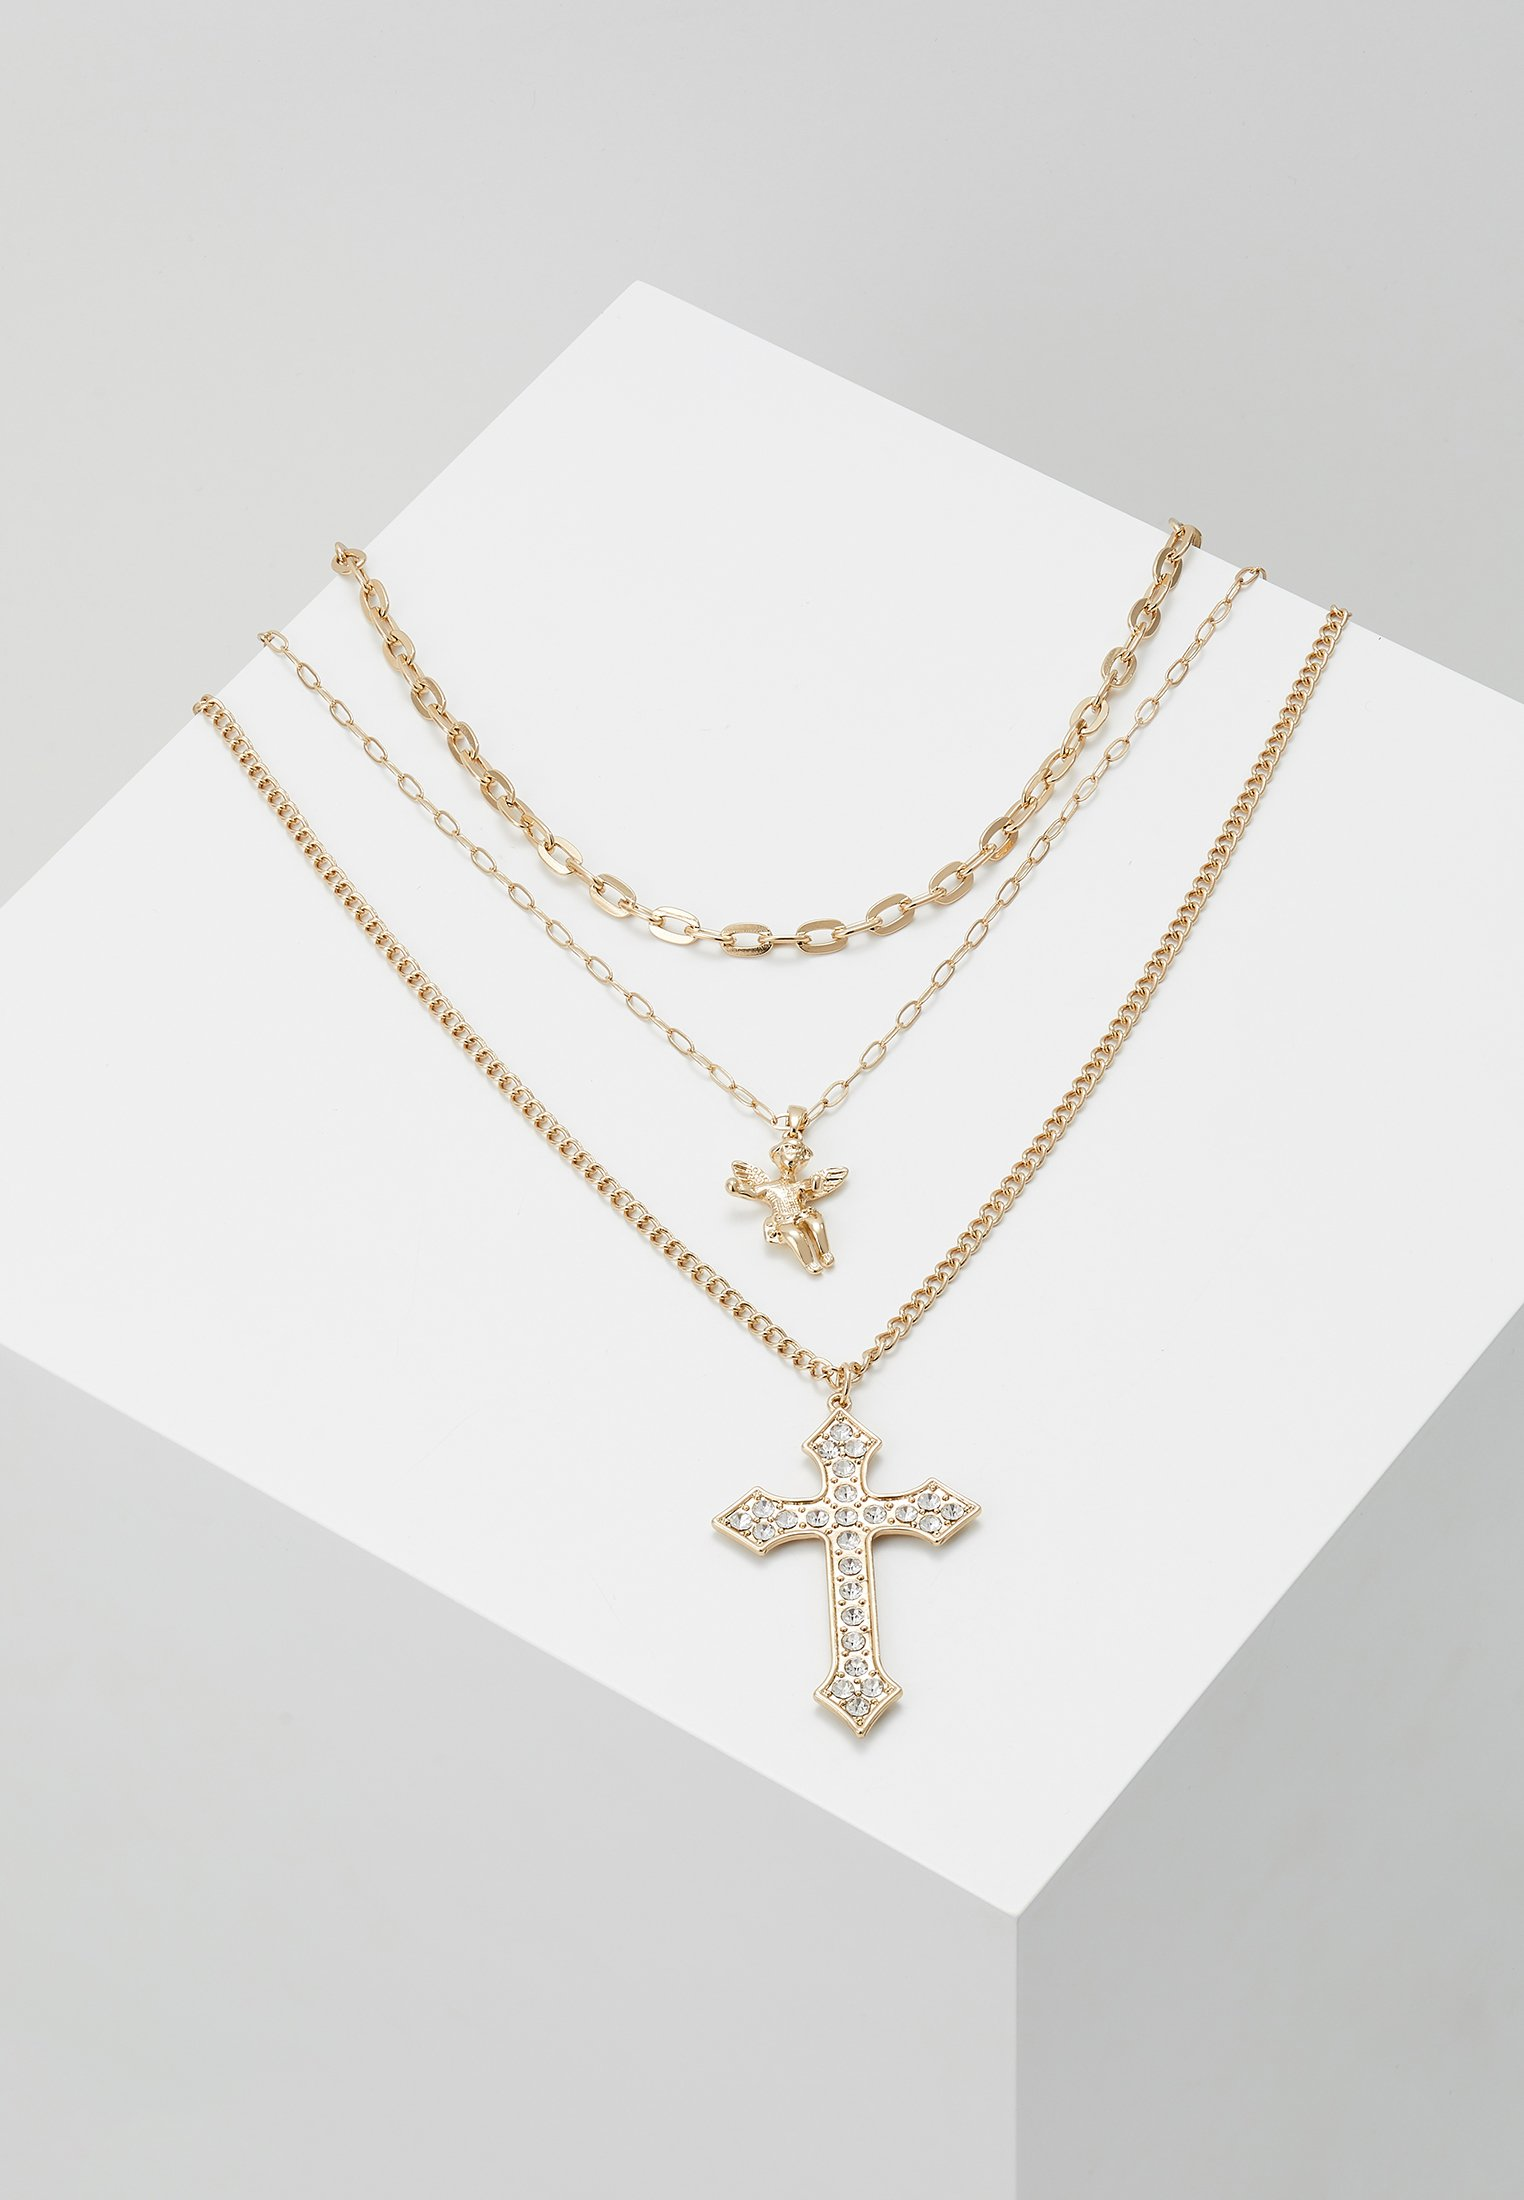 And coloured Cross NecklaceCollier Gold Topman Cherub Chunky Chain qzMLSVpGU